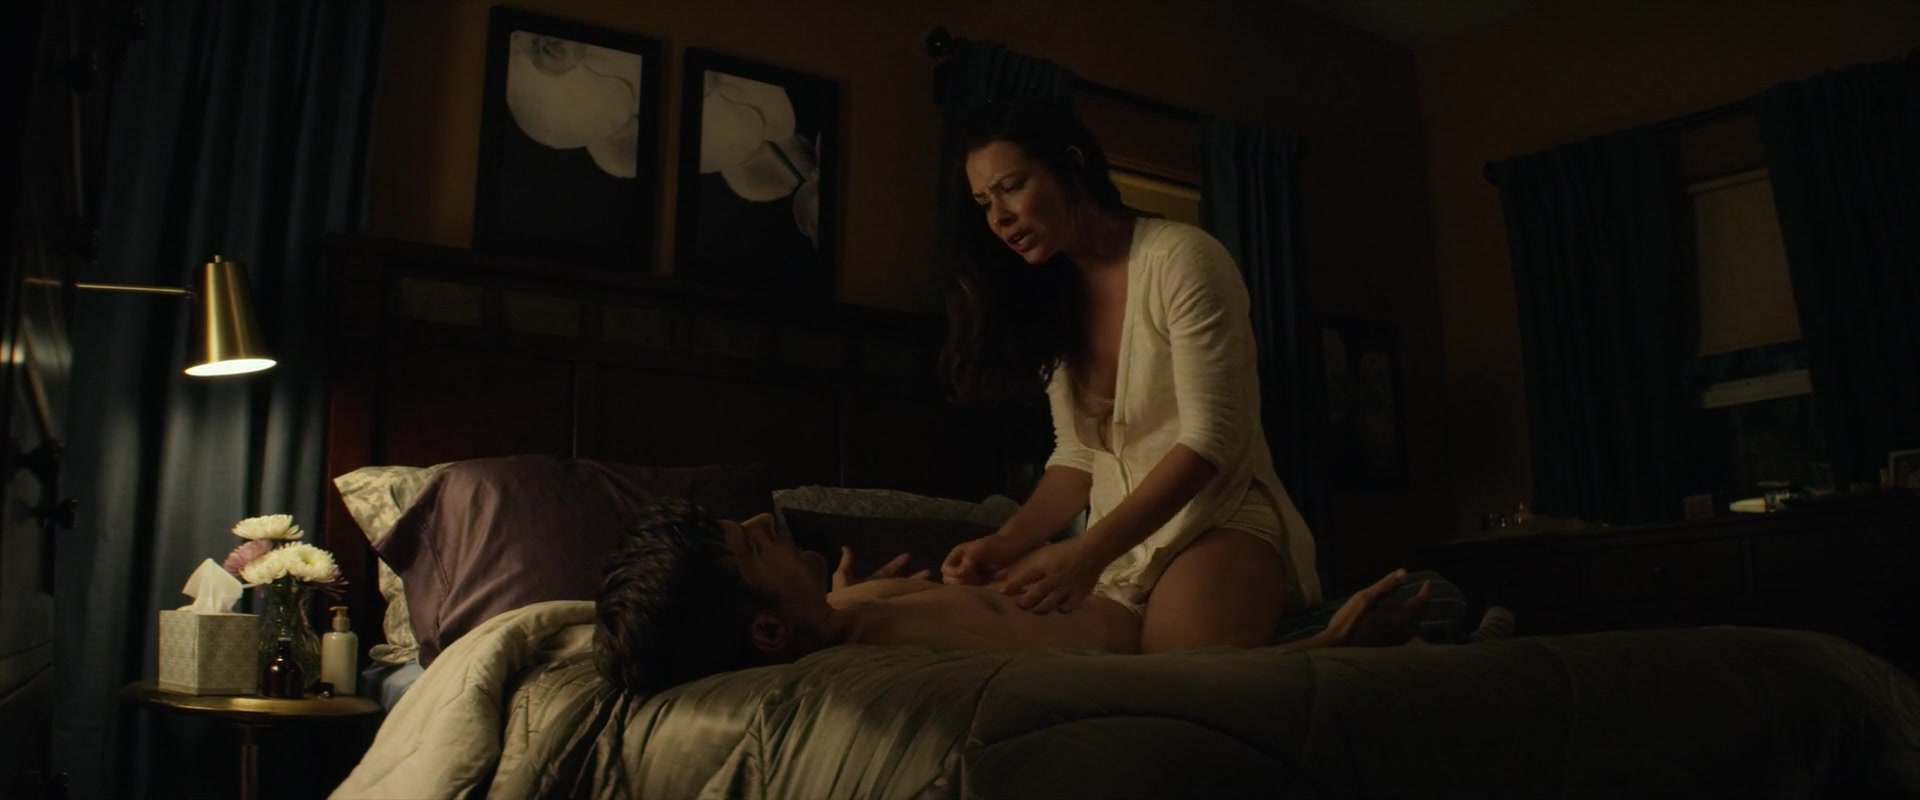 Evangeline Lilly screentime from little evil